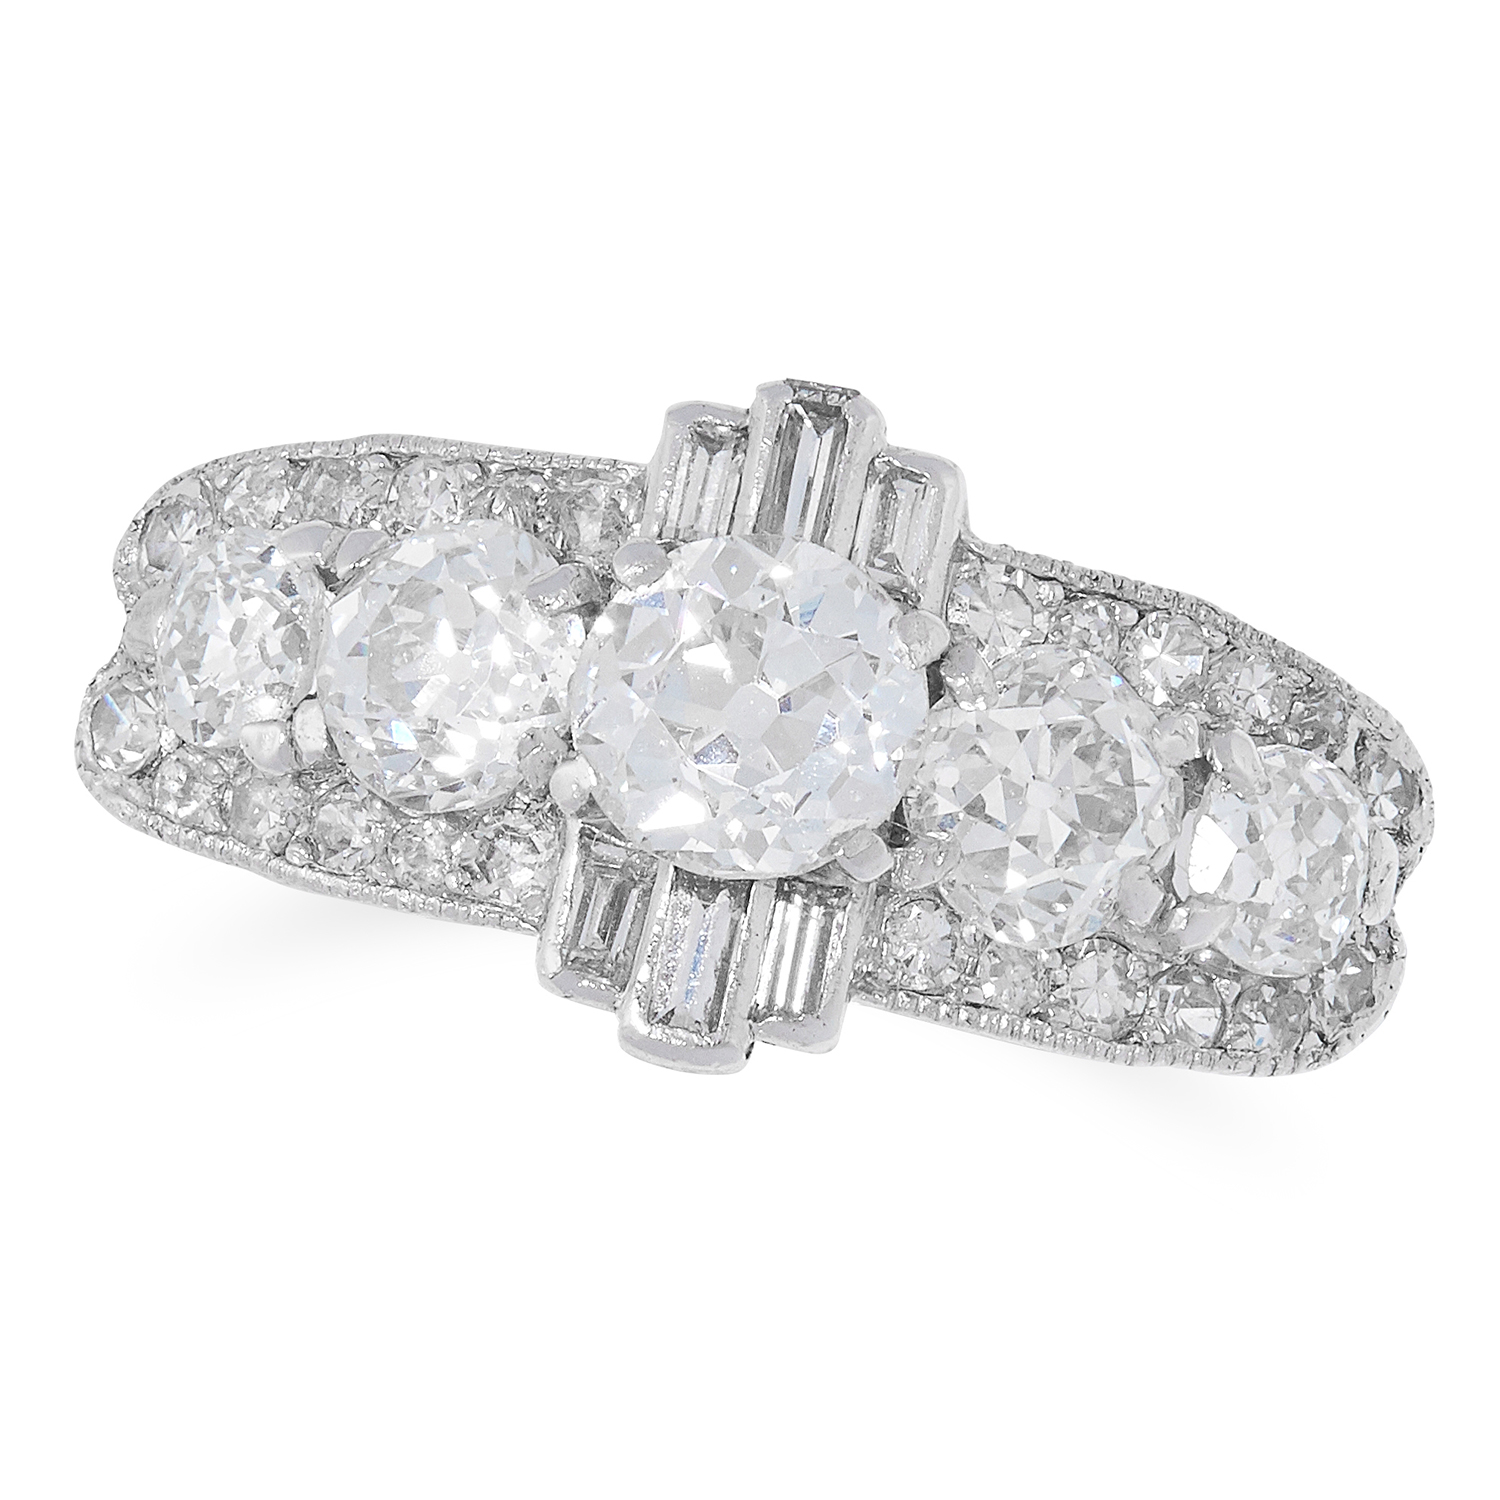 Los 60 - 2.78 CARAT DIAMOND RING in Art Deco design set with old, round and baguette cut diamonds totalling